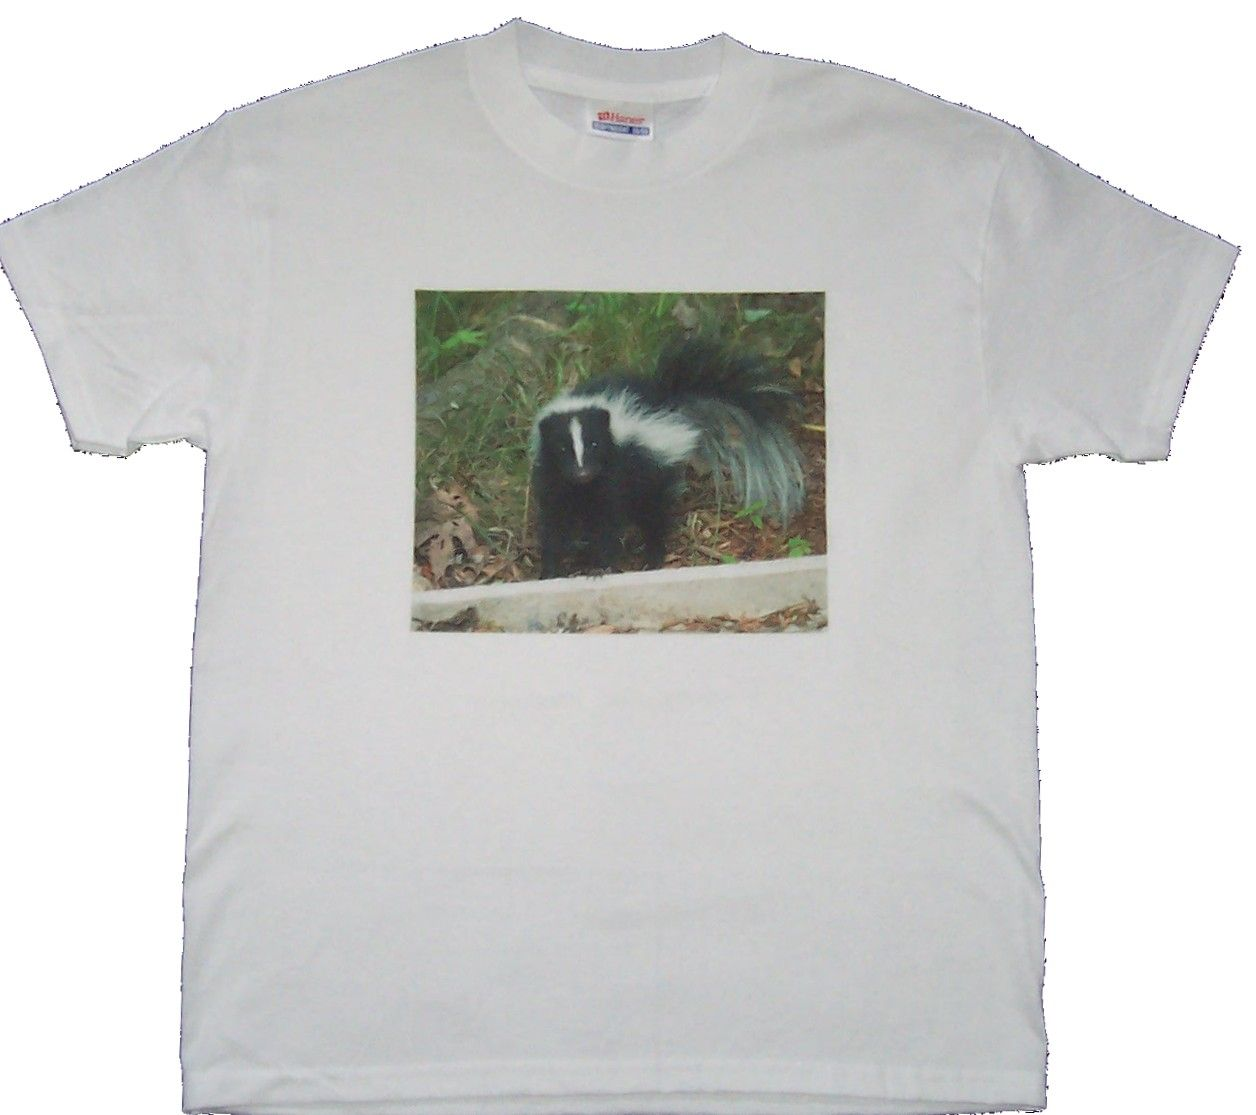 Skunk clothing youth sizes